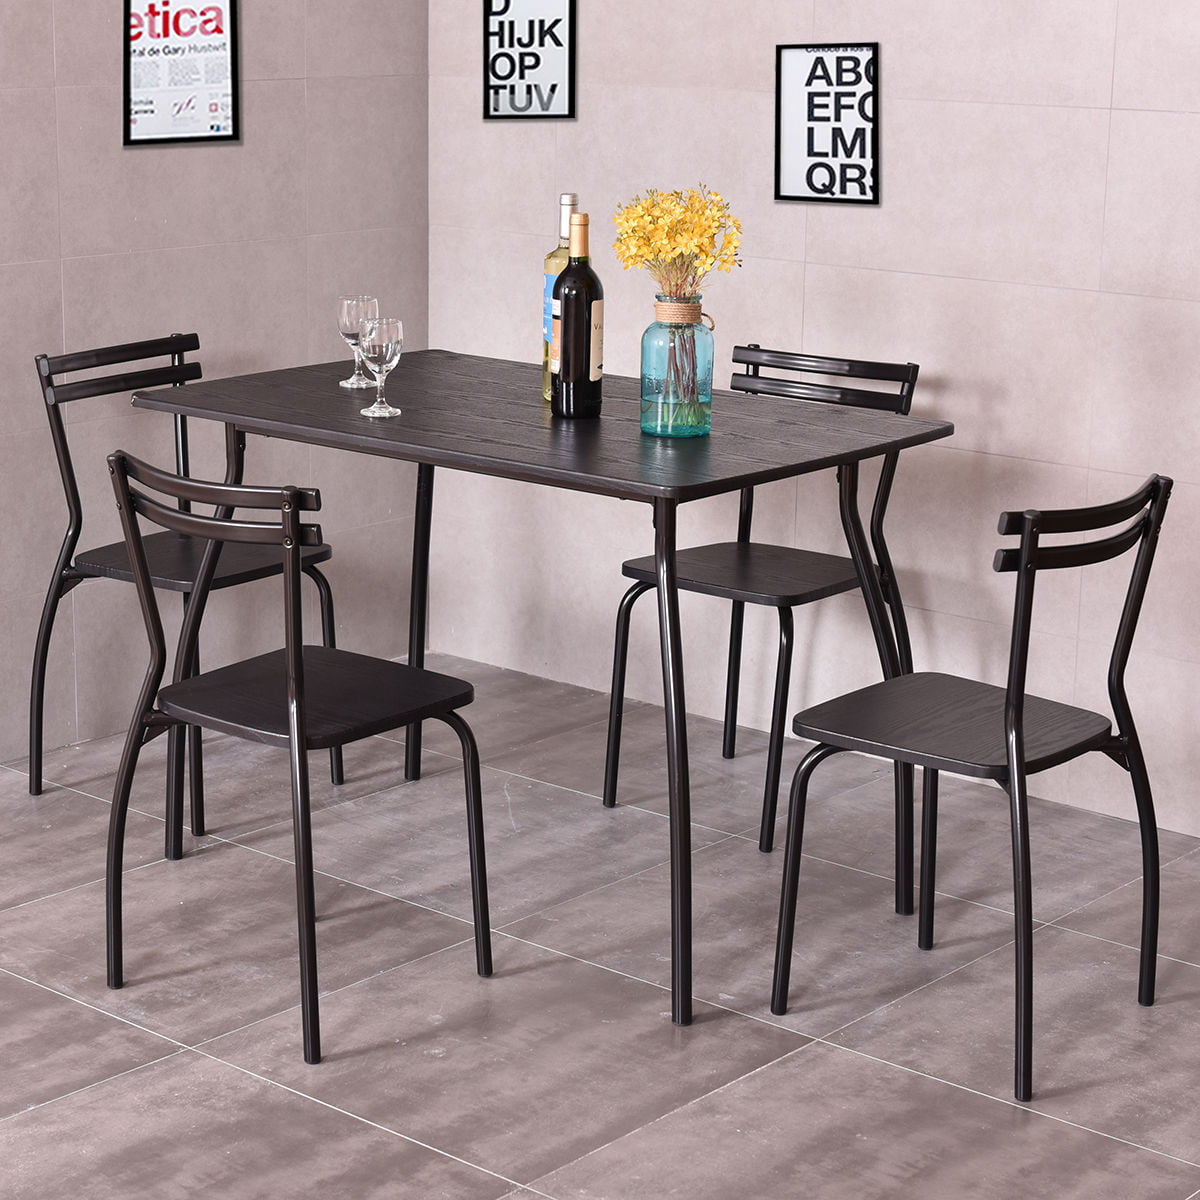 Click here to buy Costway 5 Piece Dining Room Set Table And 4 Chairs Home Kitchen Room Breakfast Furniture by Costway.